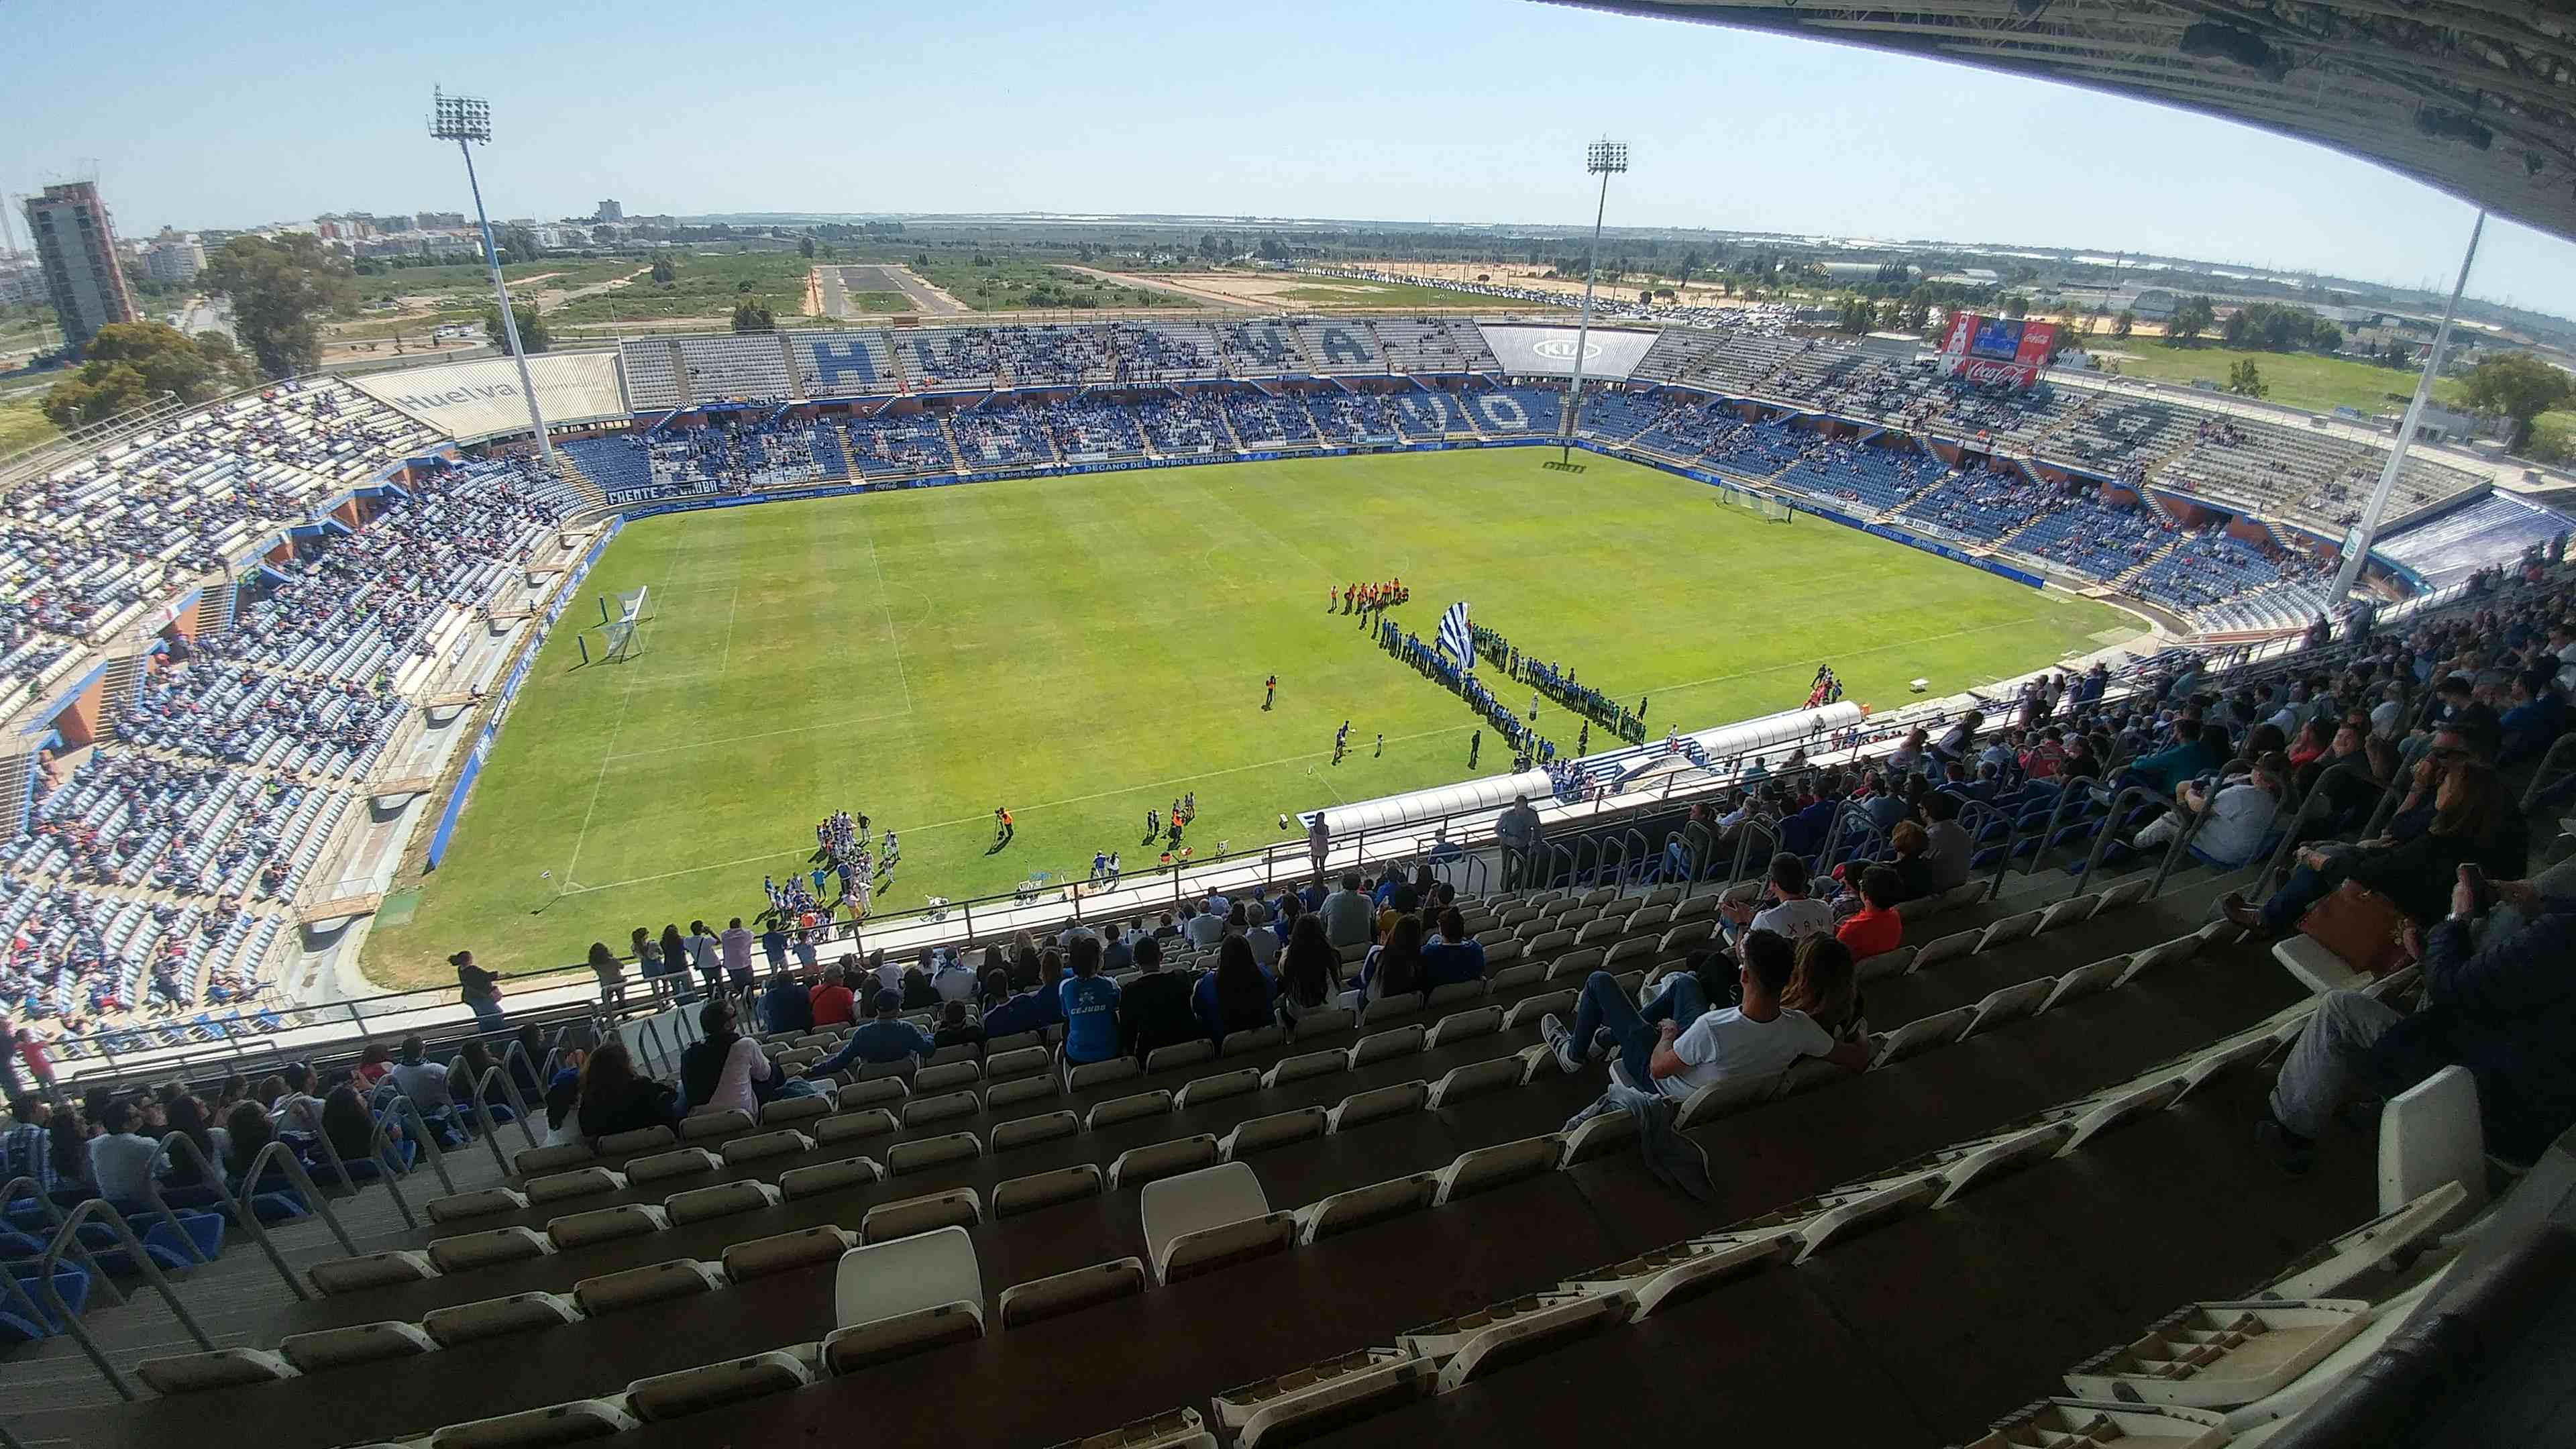 Recreativo-Las Palmas 06-05-2018 1 a 1